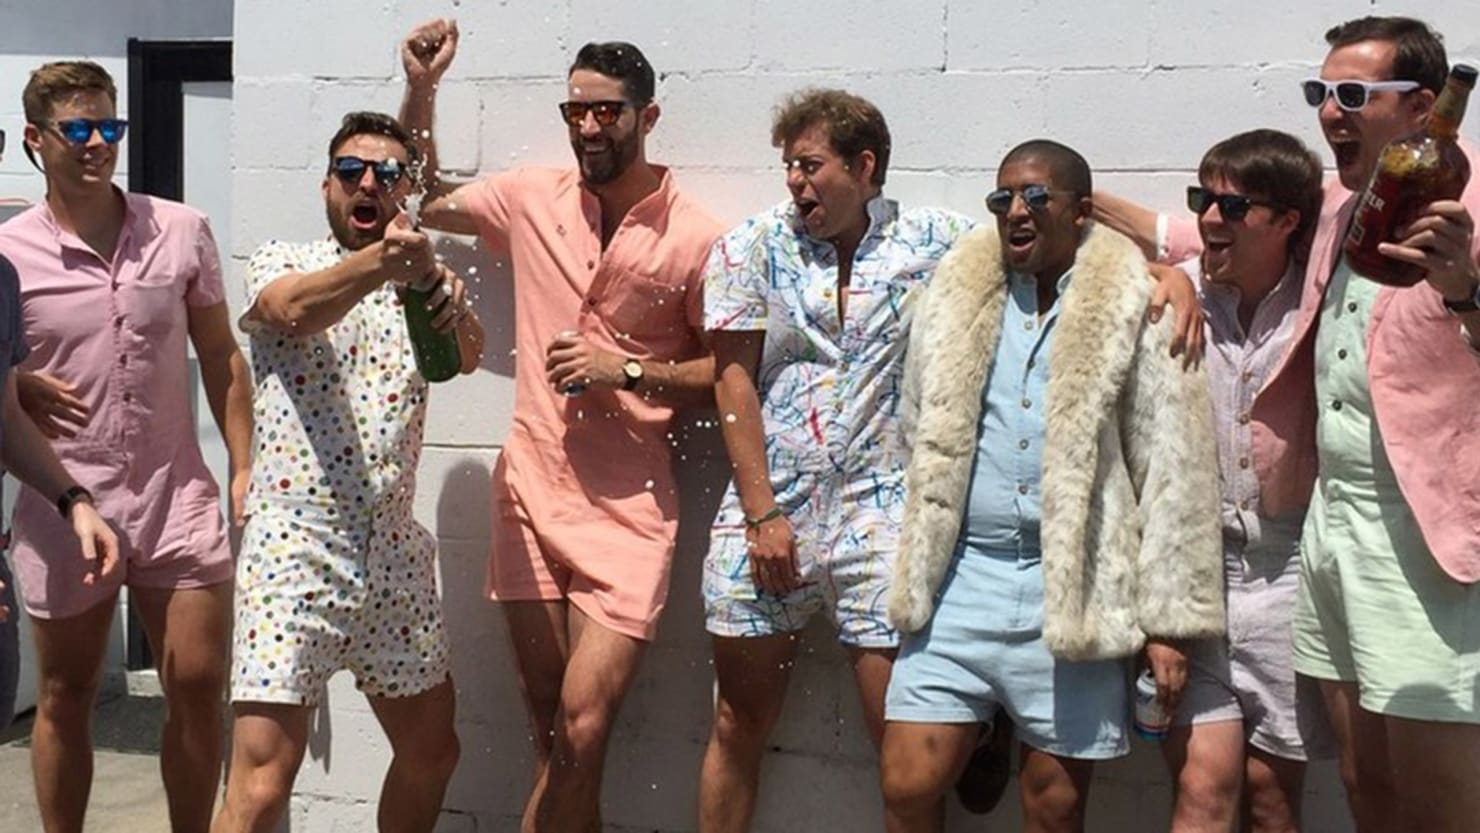 seven male models in ridiculous one piece baby suits known as rompers